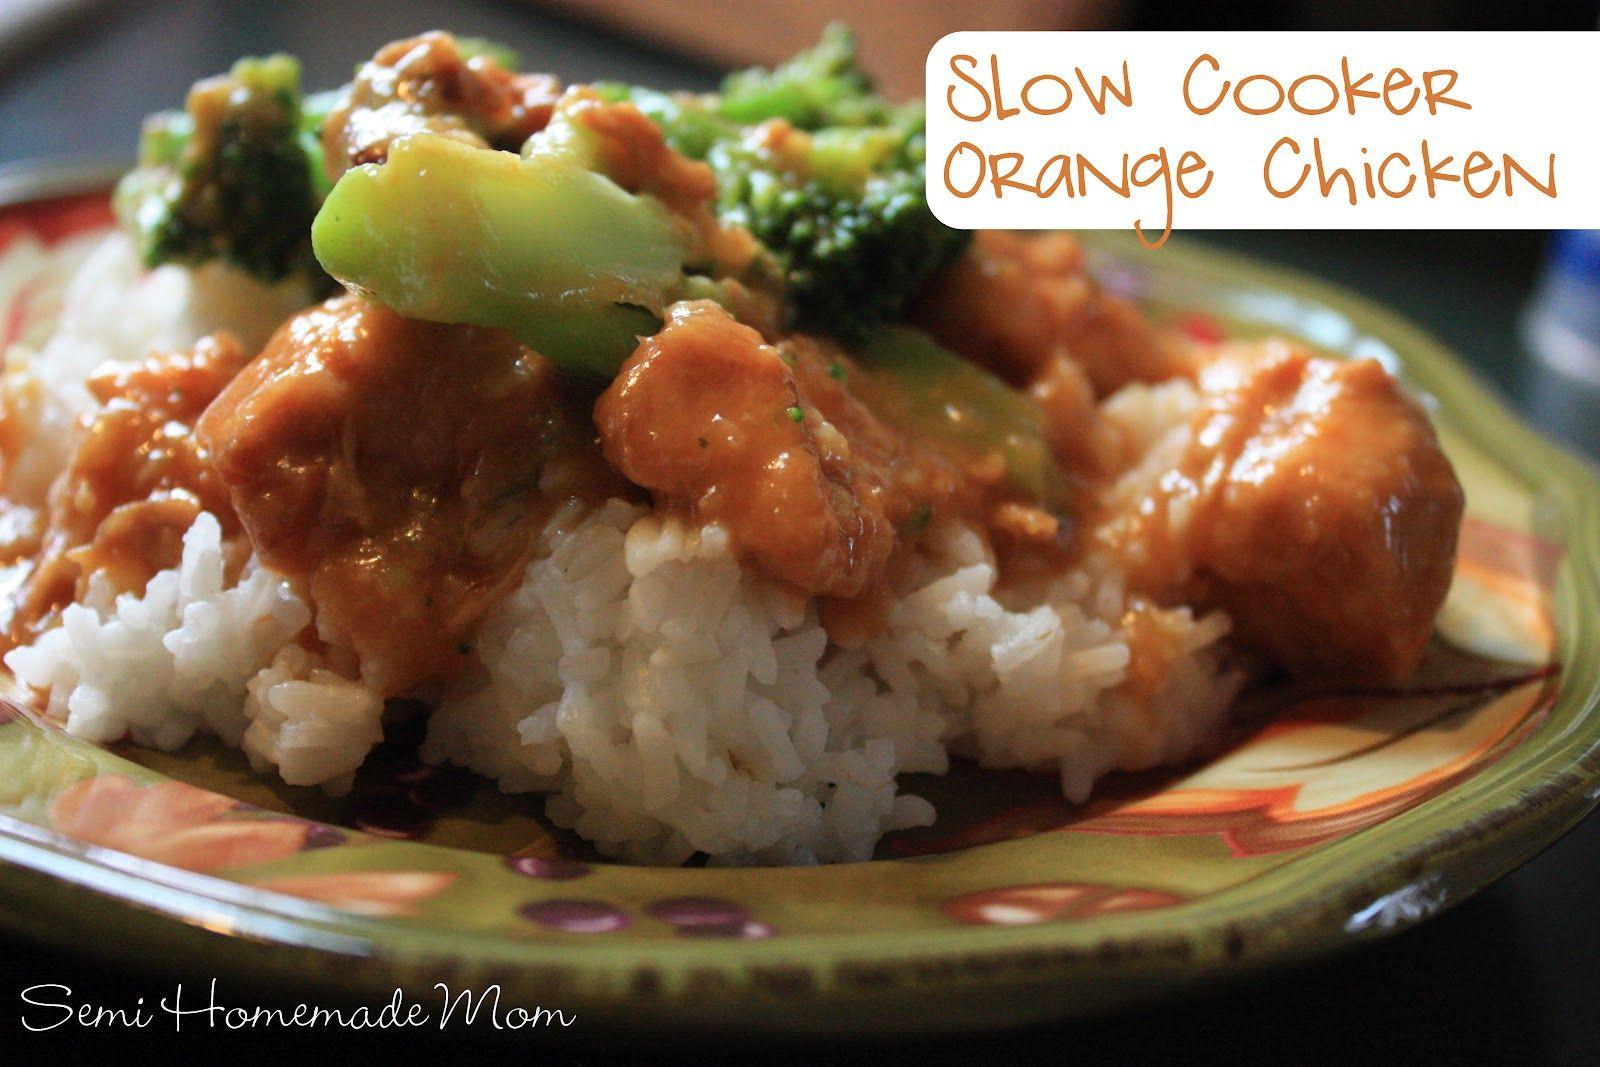 Forget Take-out: Slow Cooker Orange Chicken